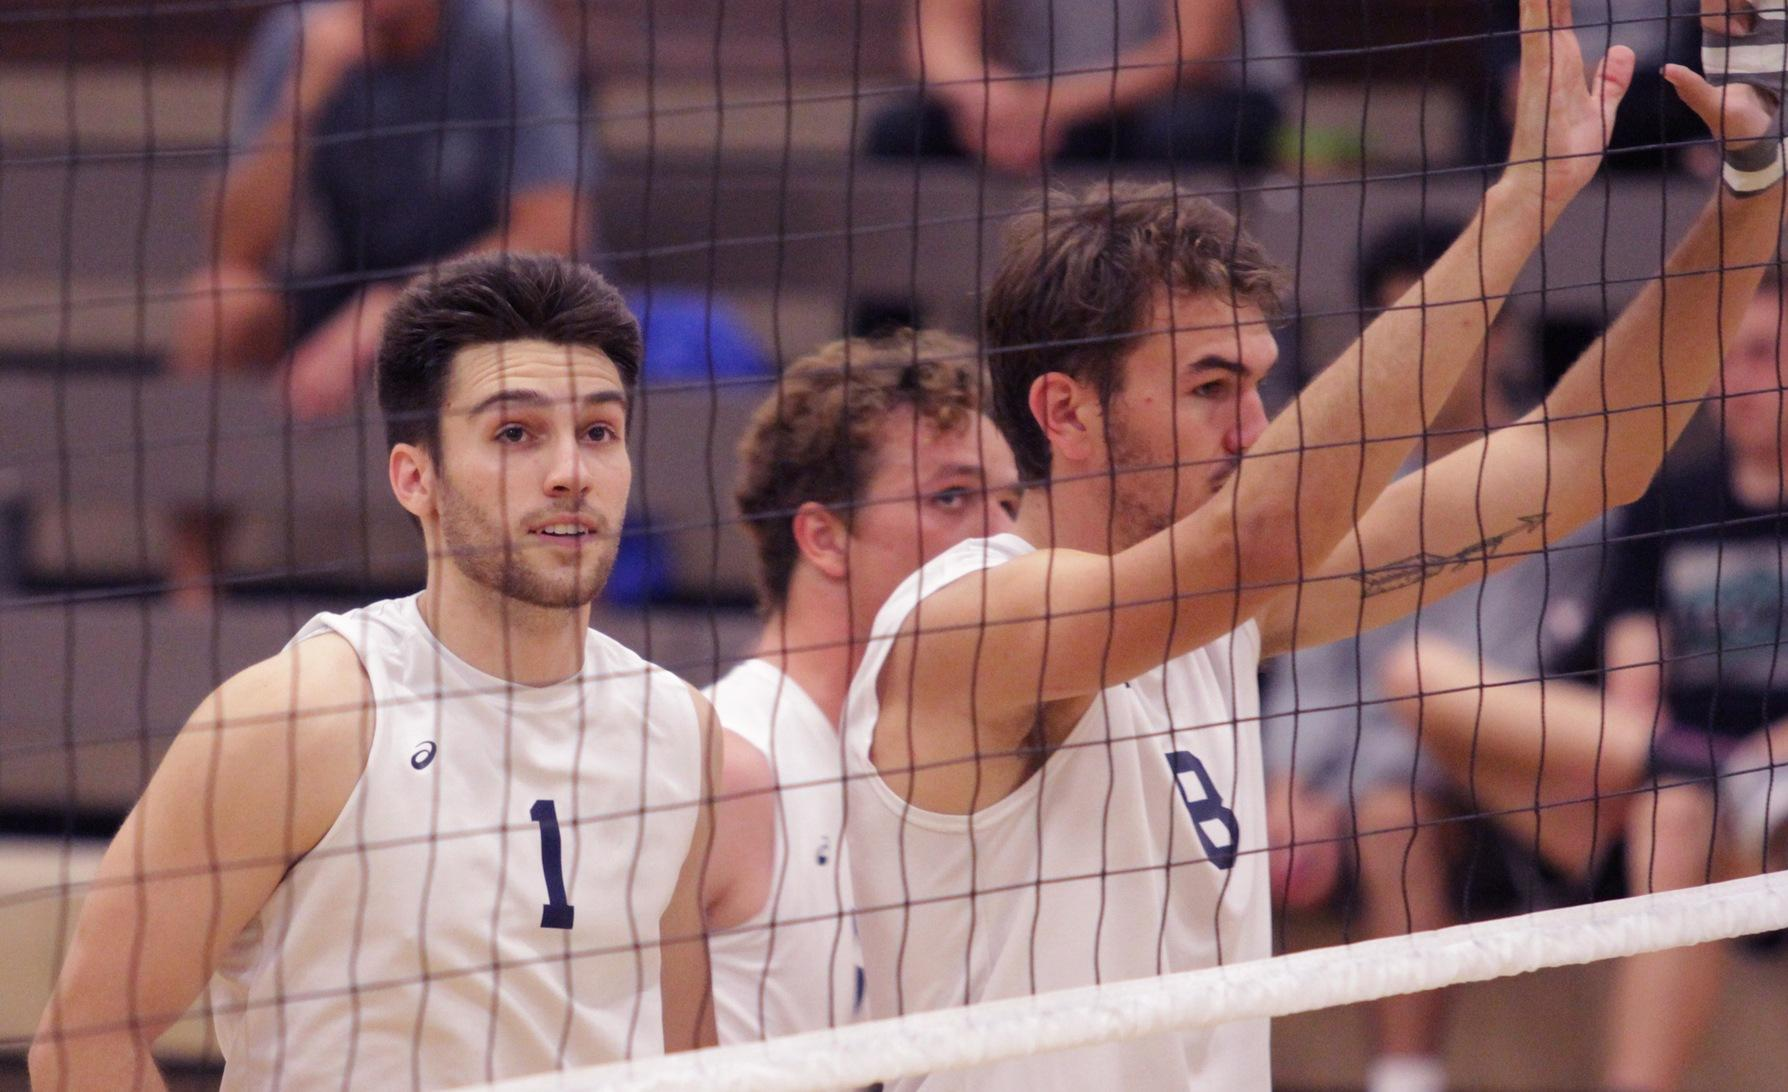 Men's volleyball team to host El Camino in playoff opener